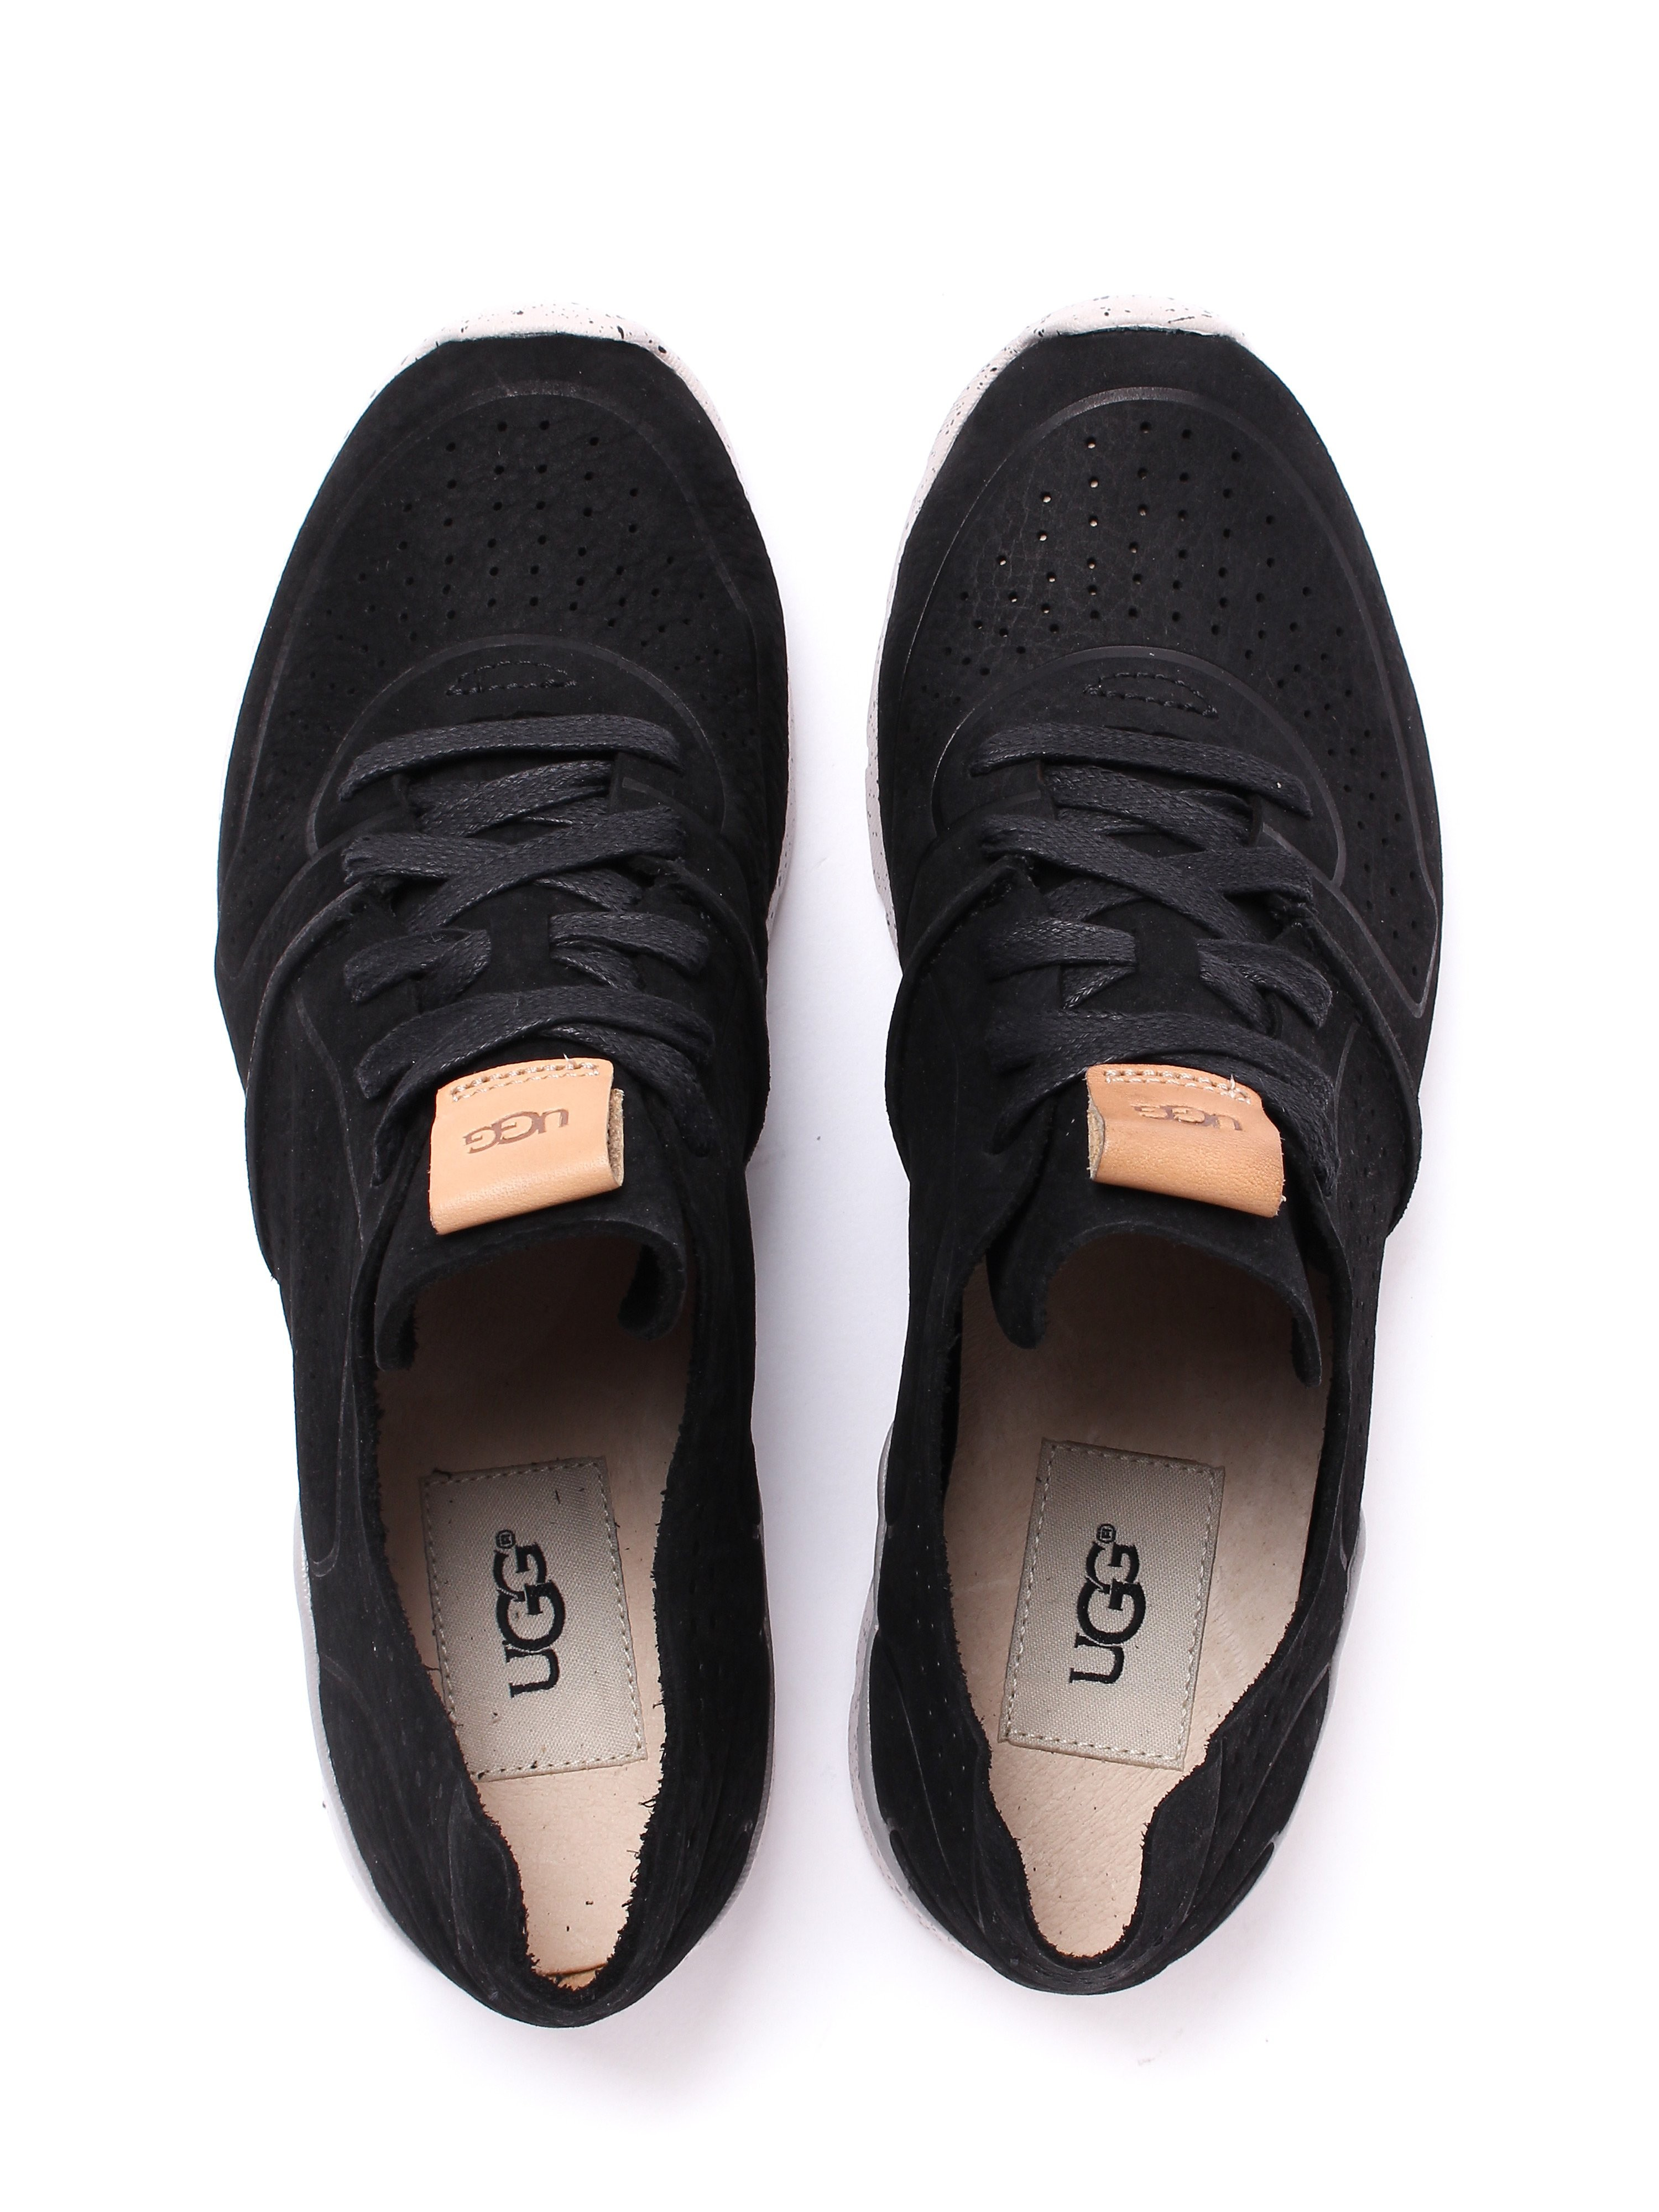 Ugg Women's Tye Textured Leather Trainers - Black